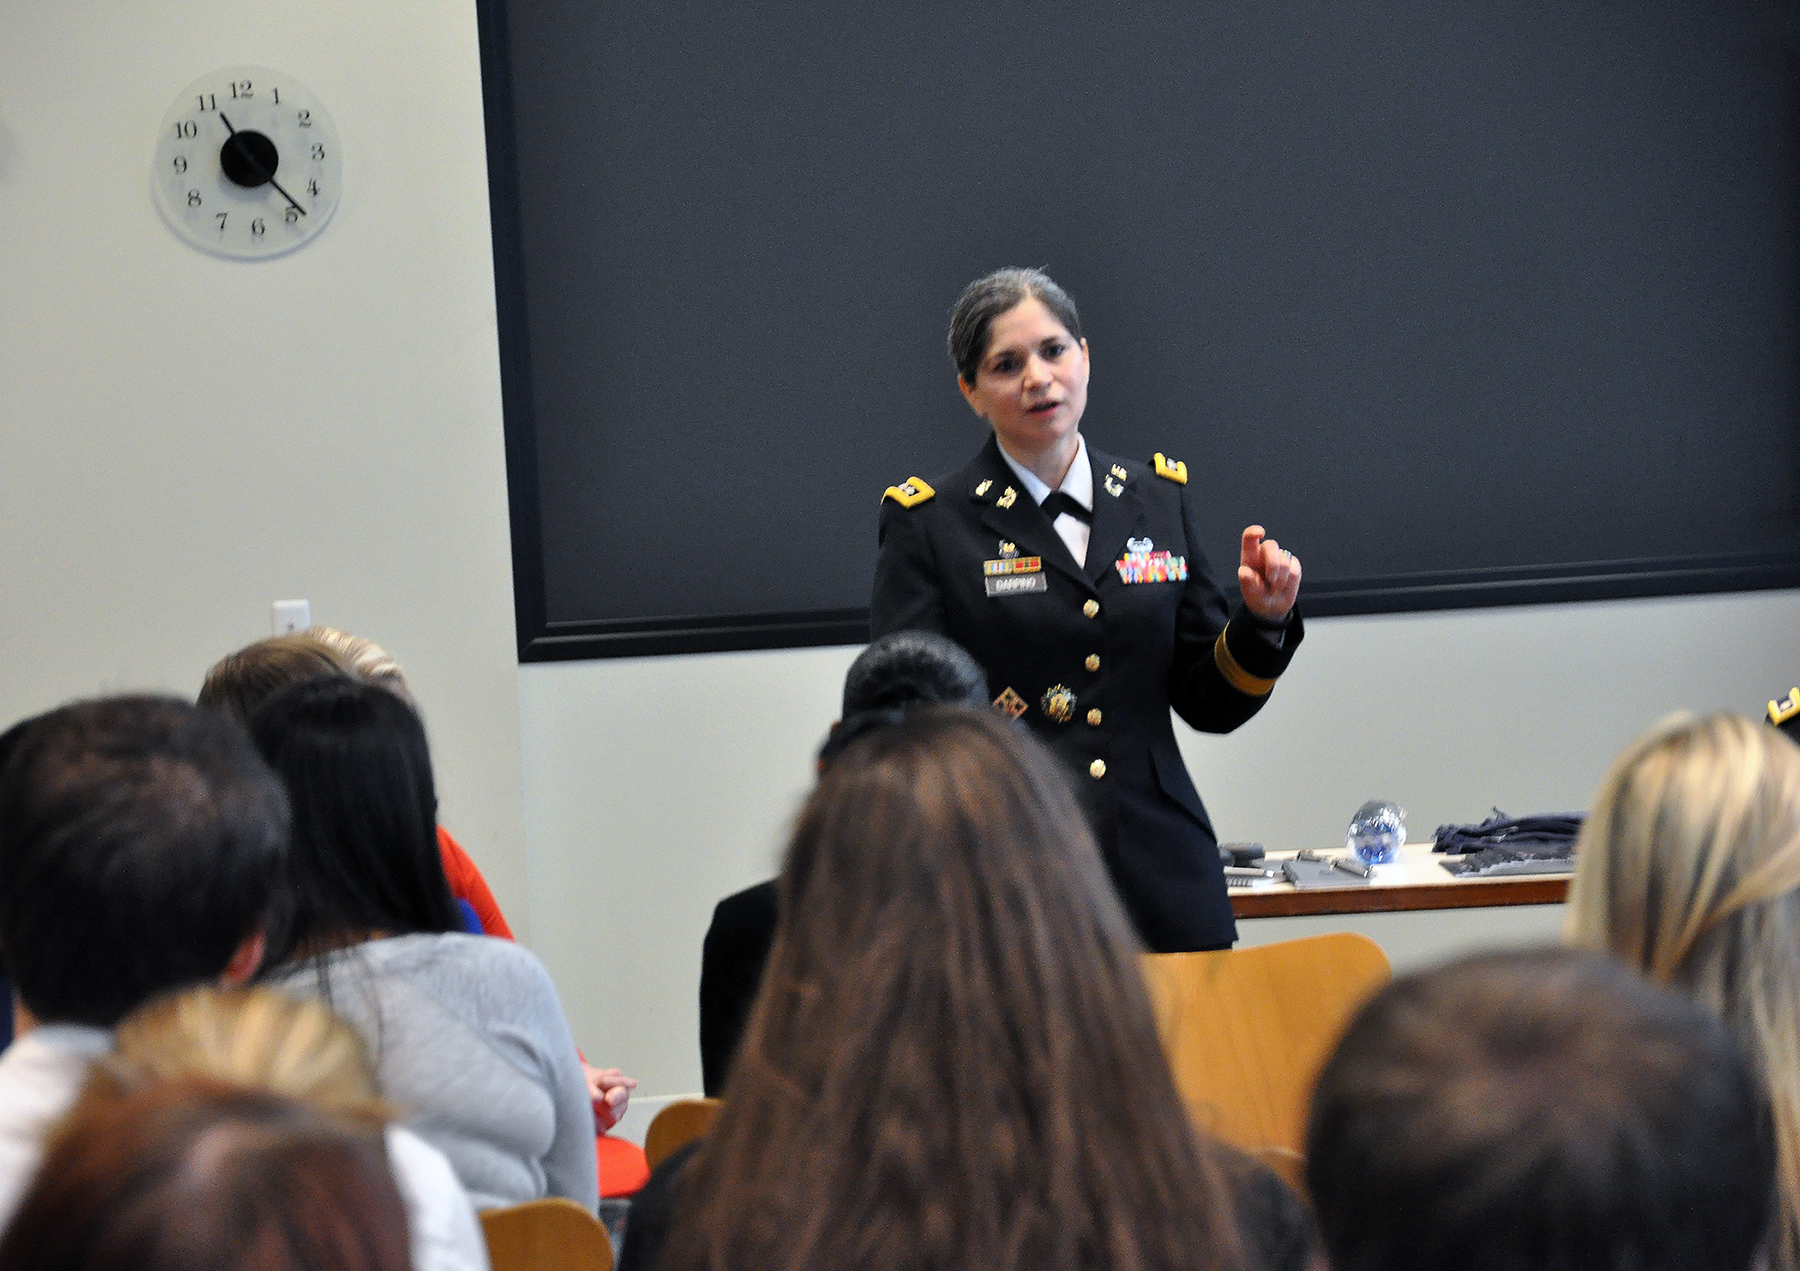 South Texas College Of Law Houston Hosts First Female Judge Advocate General Of The U S Army